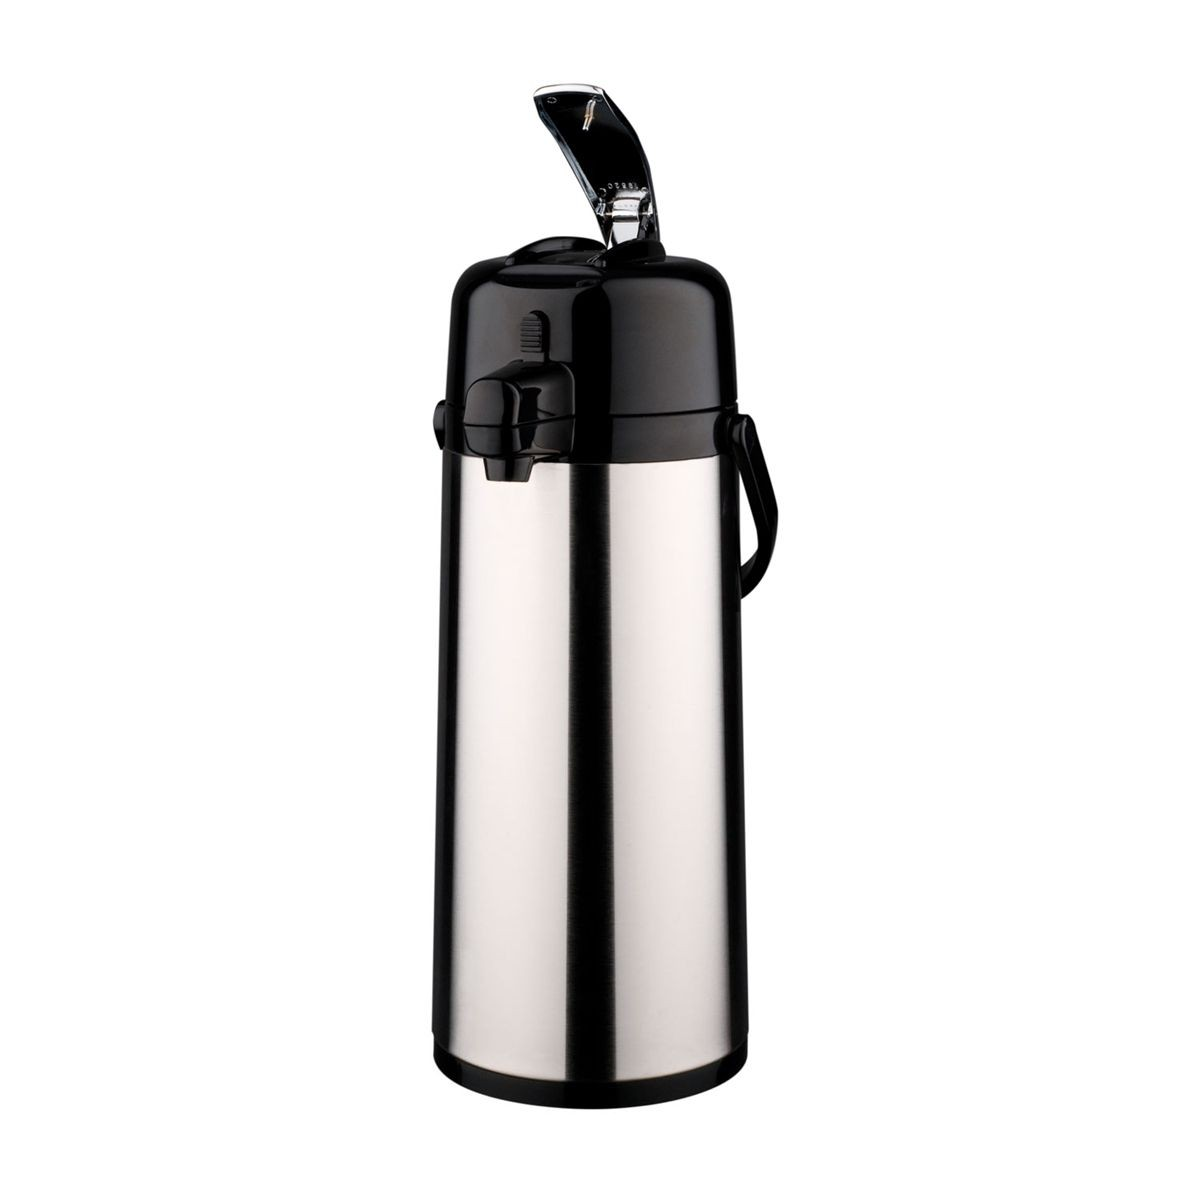 Service Ideas ECAL19S Eco Air Smooth Body Insulated Airpot, 1.9 Liter